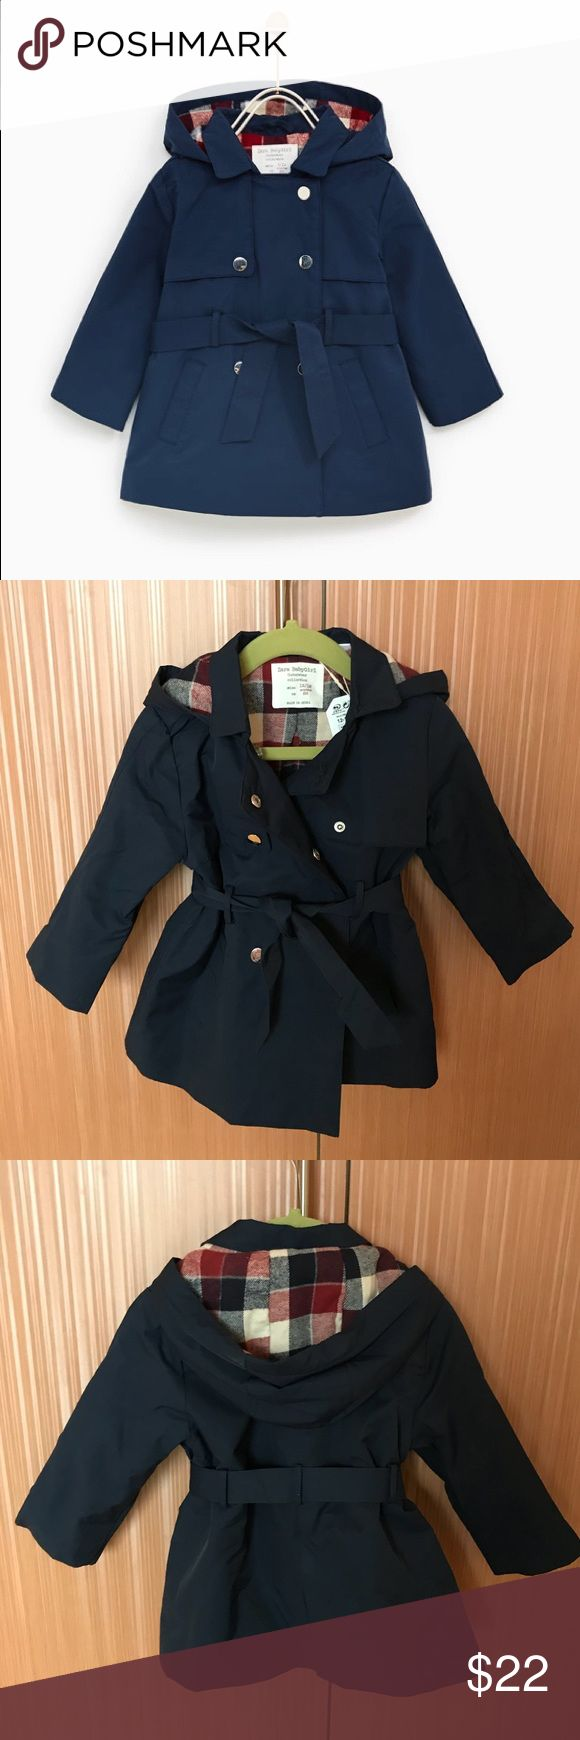 Gorgeous baby girl trench coat NWT 12-18M. Button closure with belt. Hood is attached. Lined with plush cotton lining, adorable checked design. Looks a little like Burberry style coat :)  New with tags attached. Deep blue with red/white checked design lining Zara Jackets & Coats